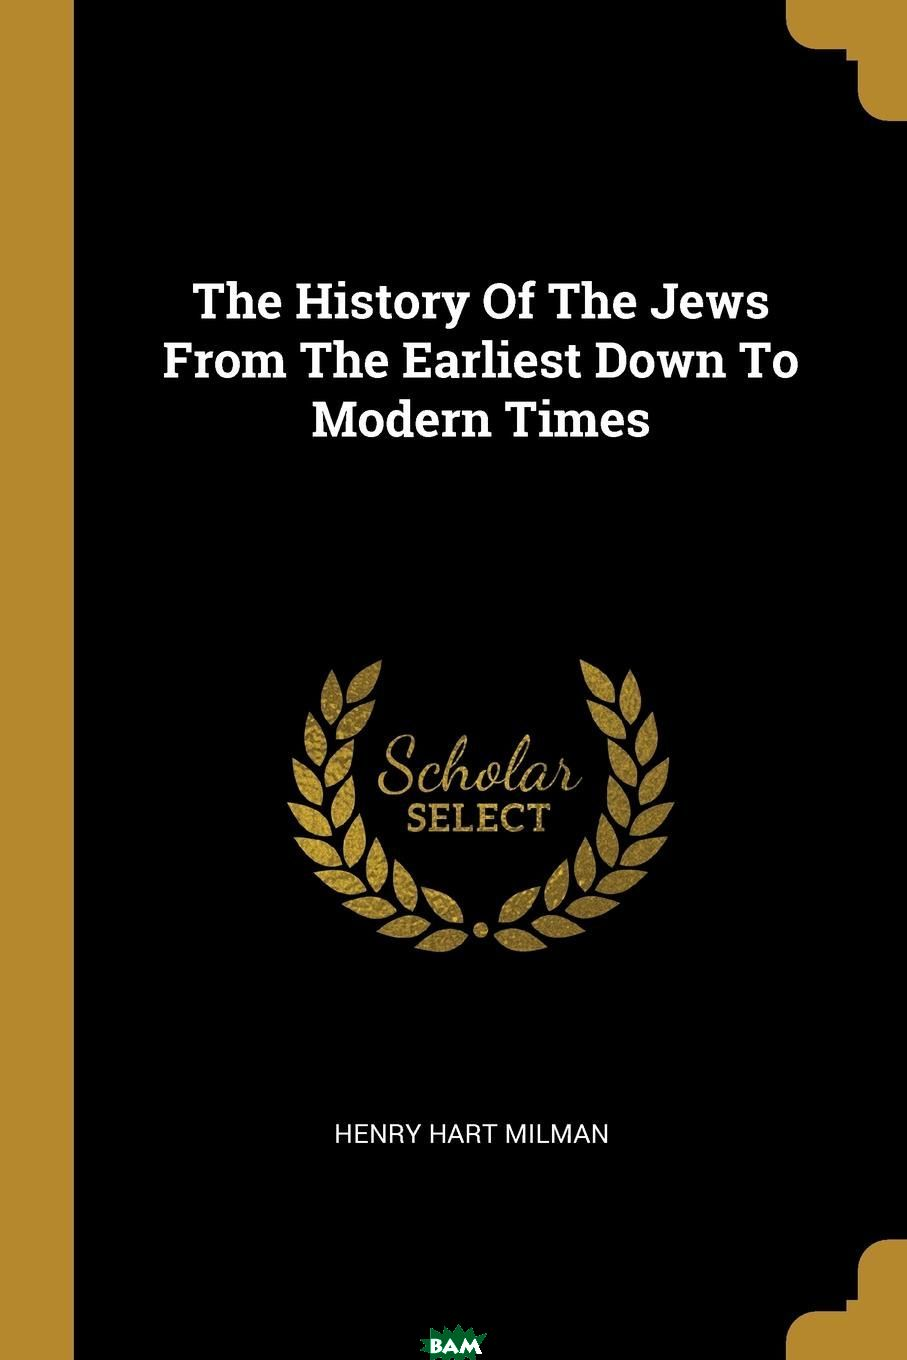 Купить The History Of The Jews From The Earliest Down To Modern Times, Henry Hart MILMAN, 9781011159338